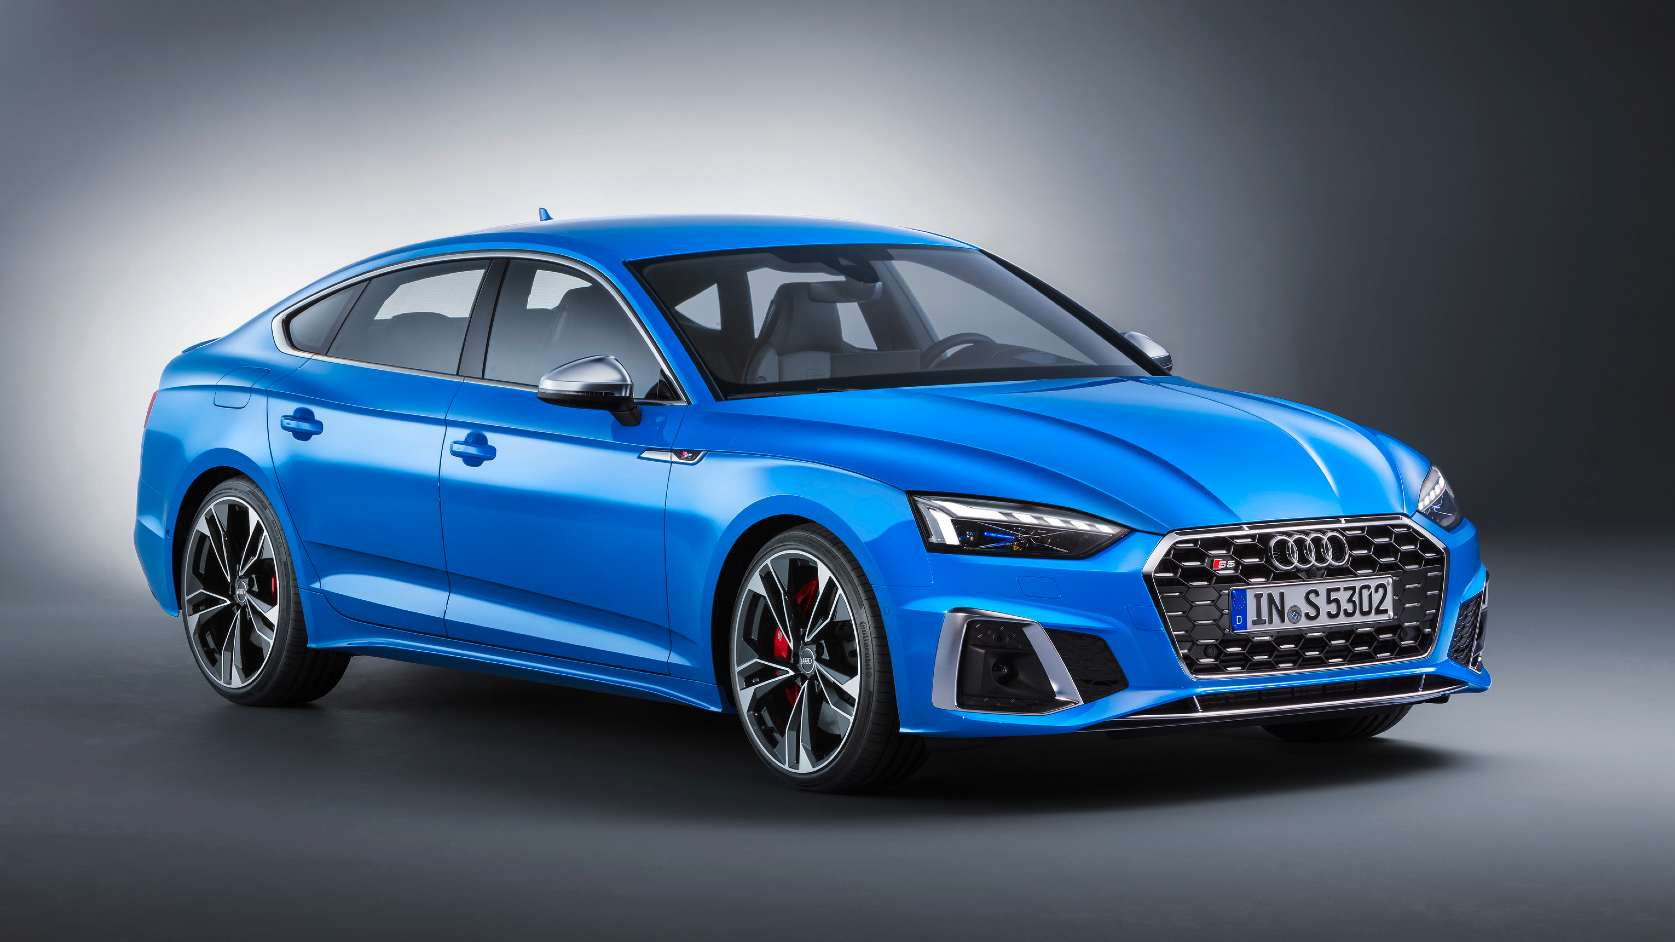 Audi S5 Sportback facelift launched in India, priced at Rs 79.06 lakh- Technology News, Gadgetclock